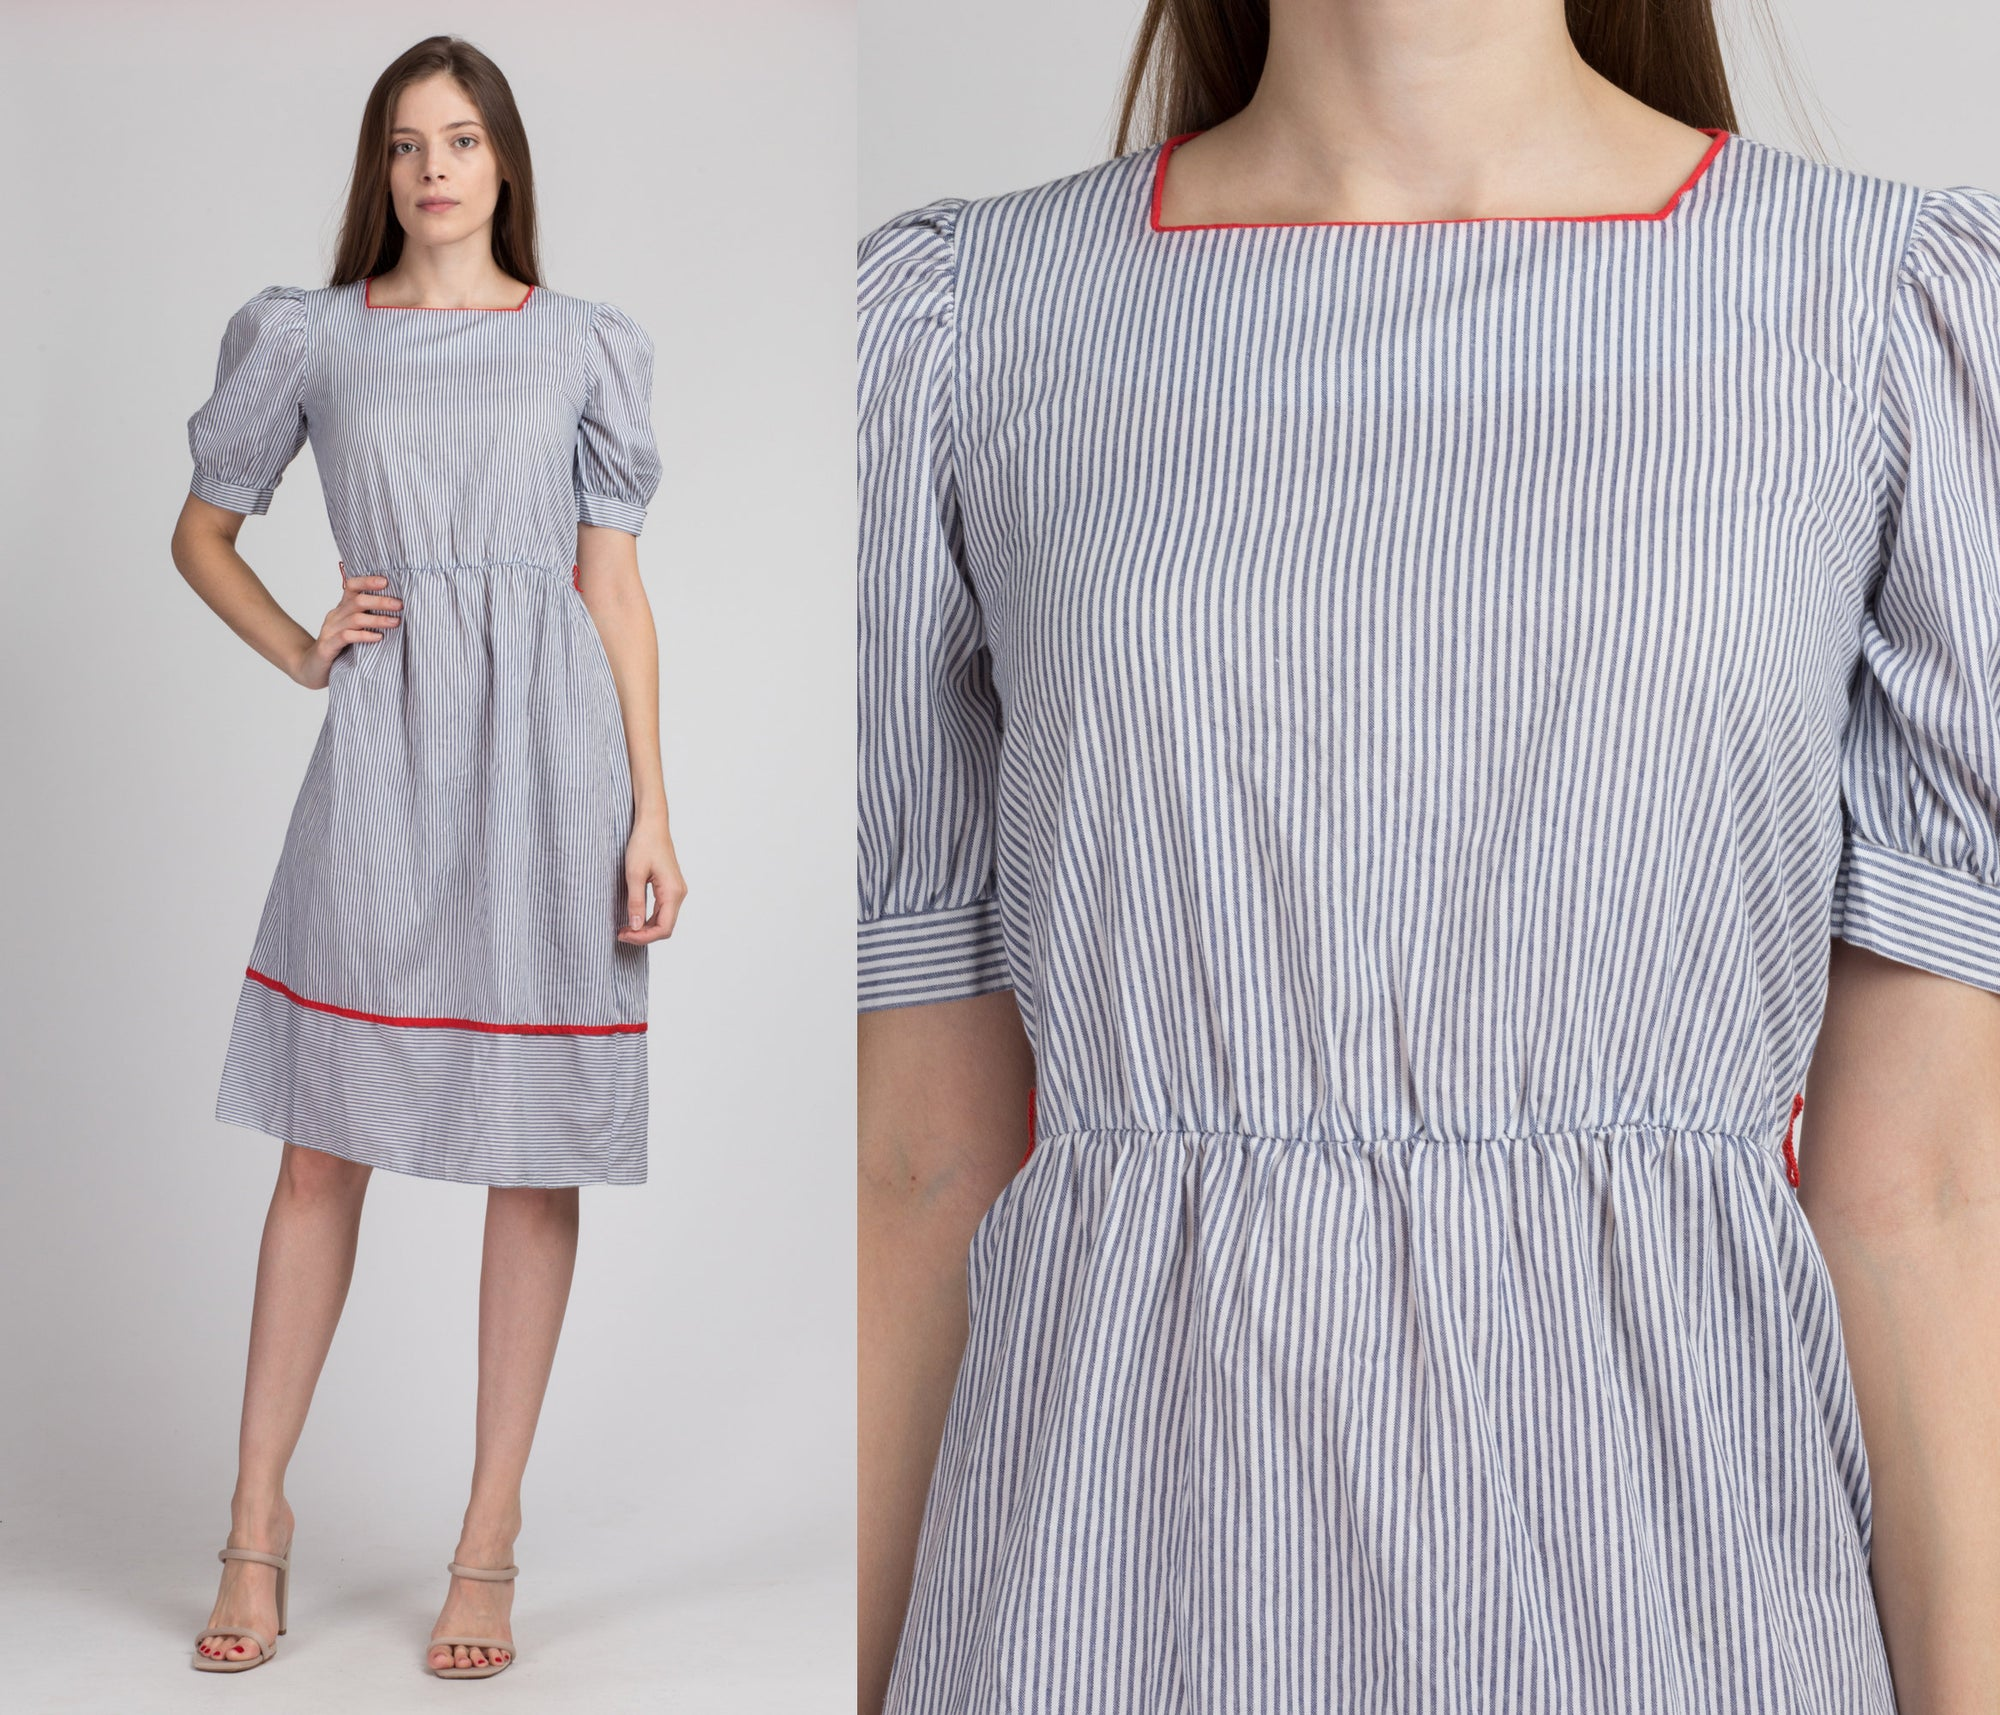 Vintage Pinstripe Puff Sleeve Mini Dress - Small